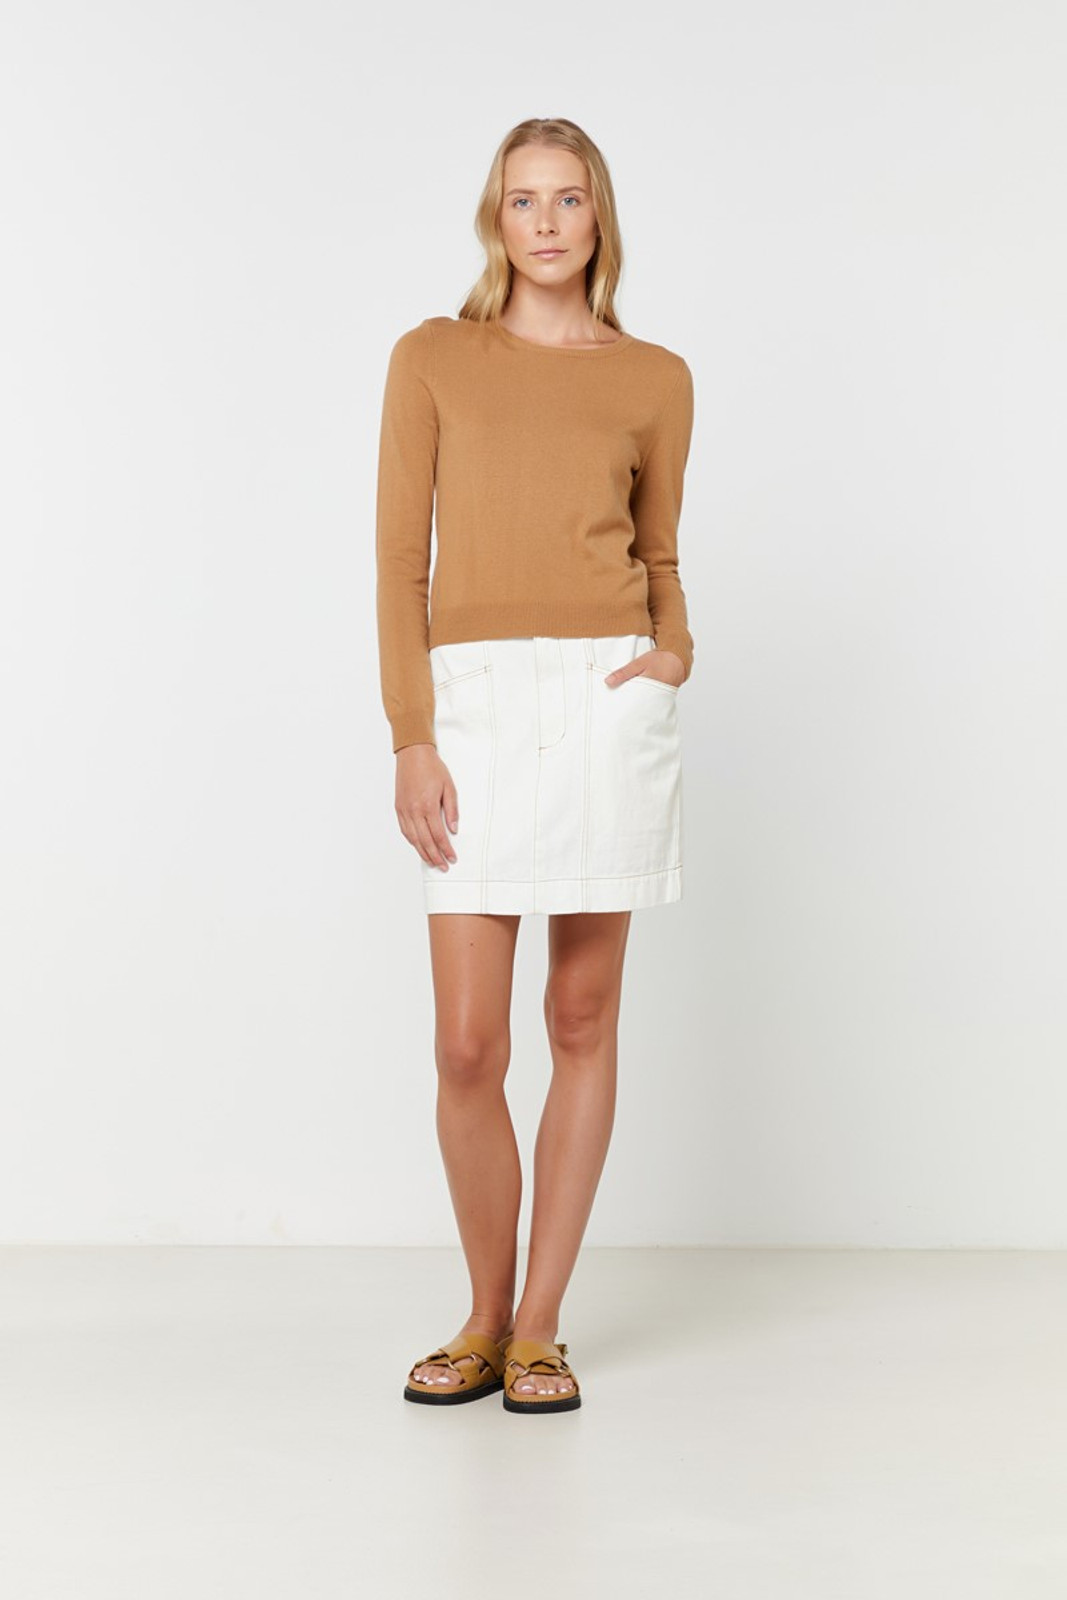 Elka Collective Gale Knit Neutrals  3